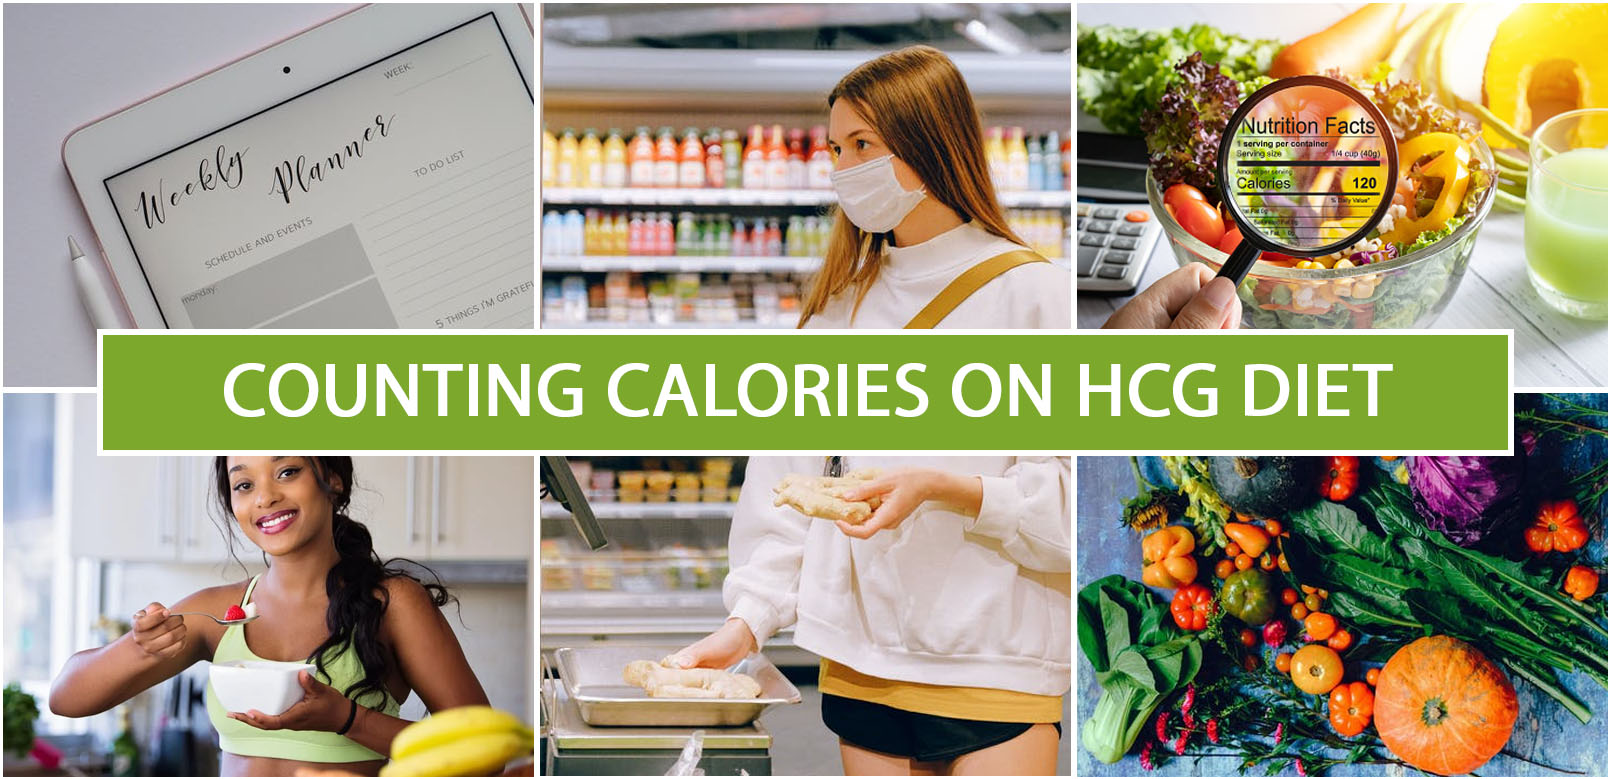 COUNTING CALORIES ON HCG DIET